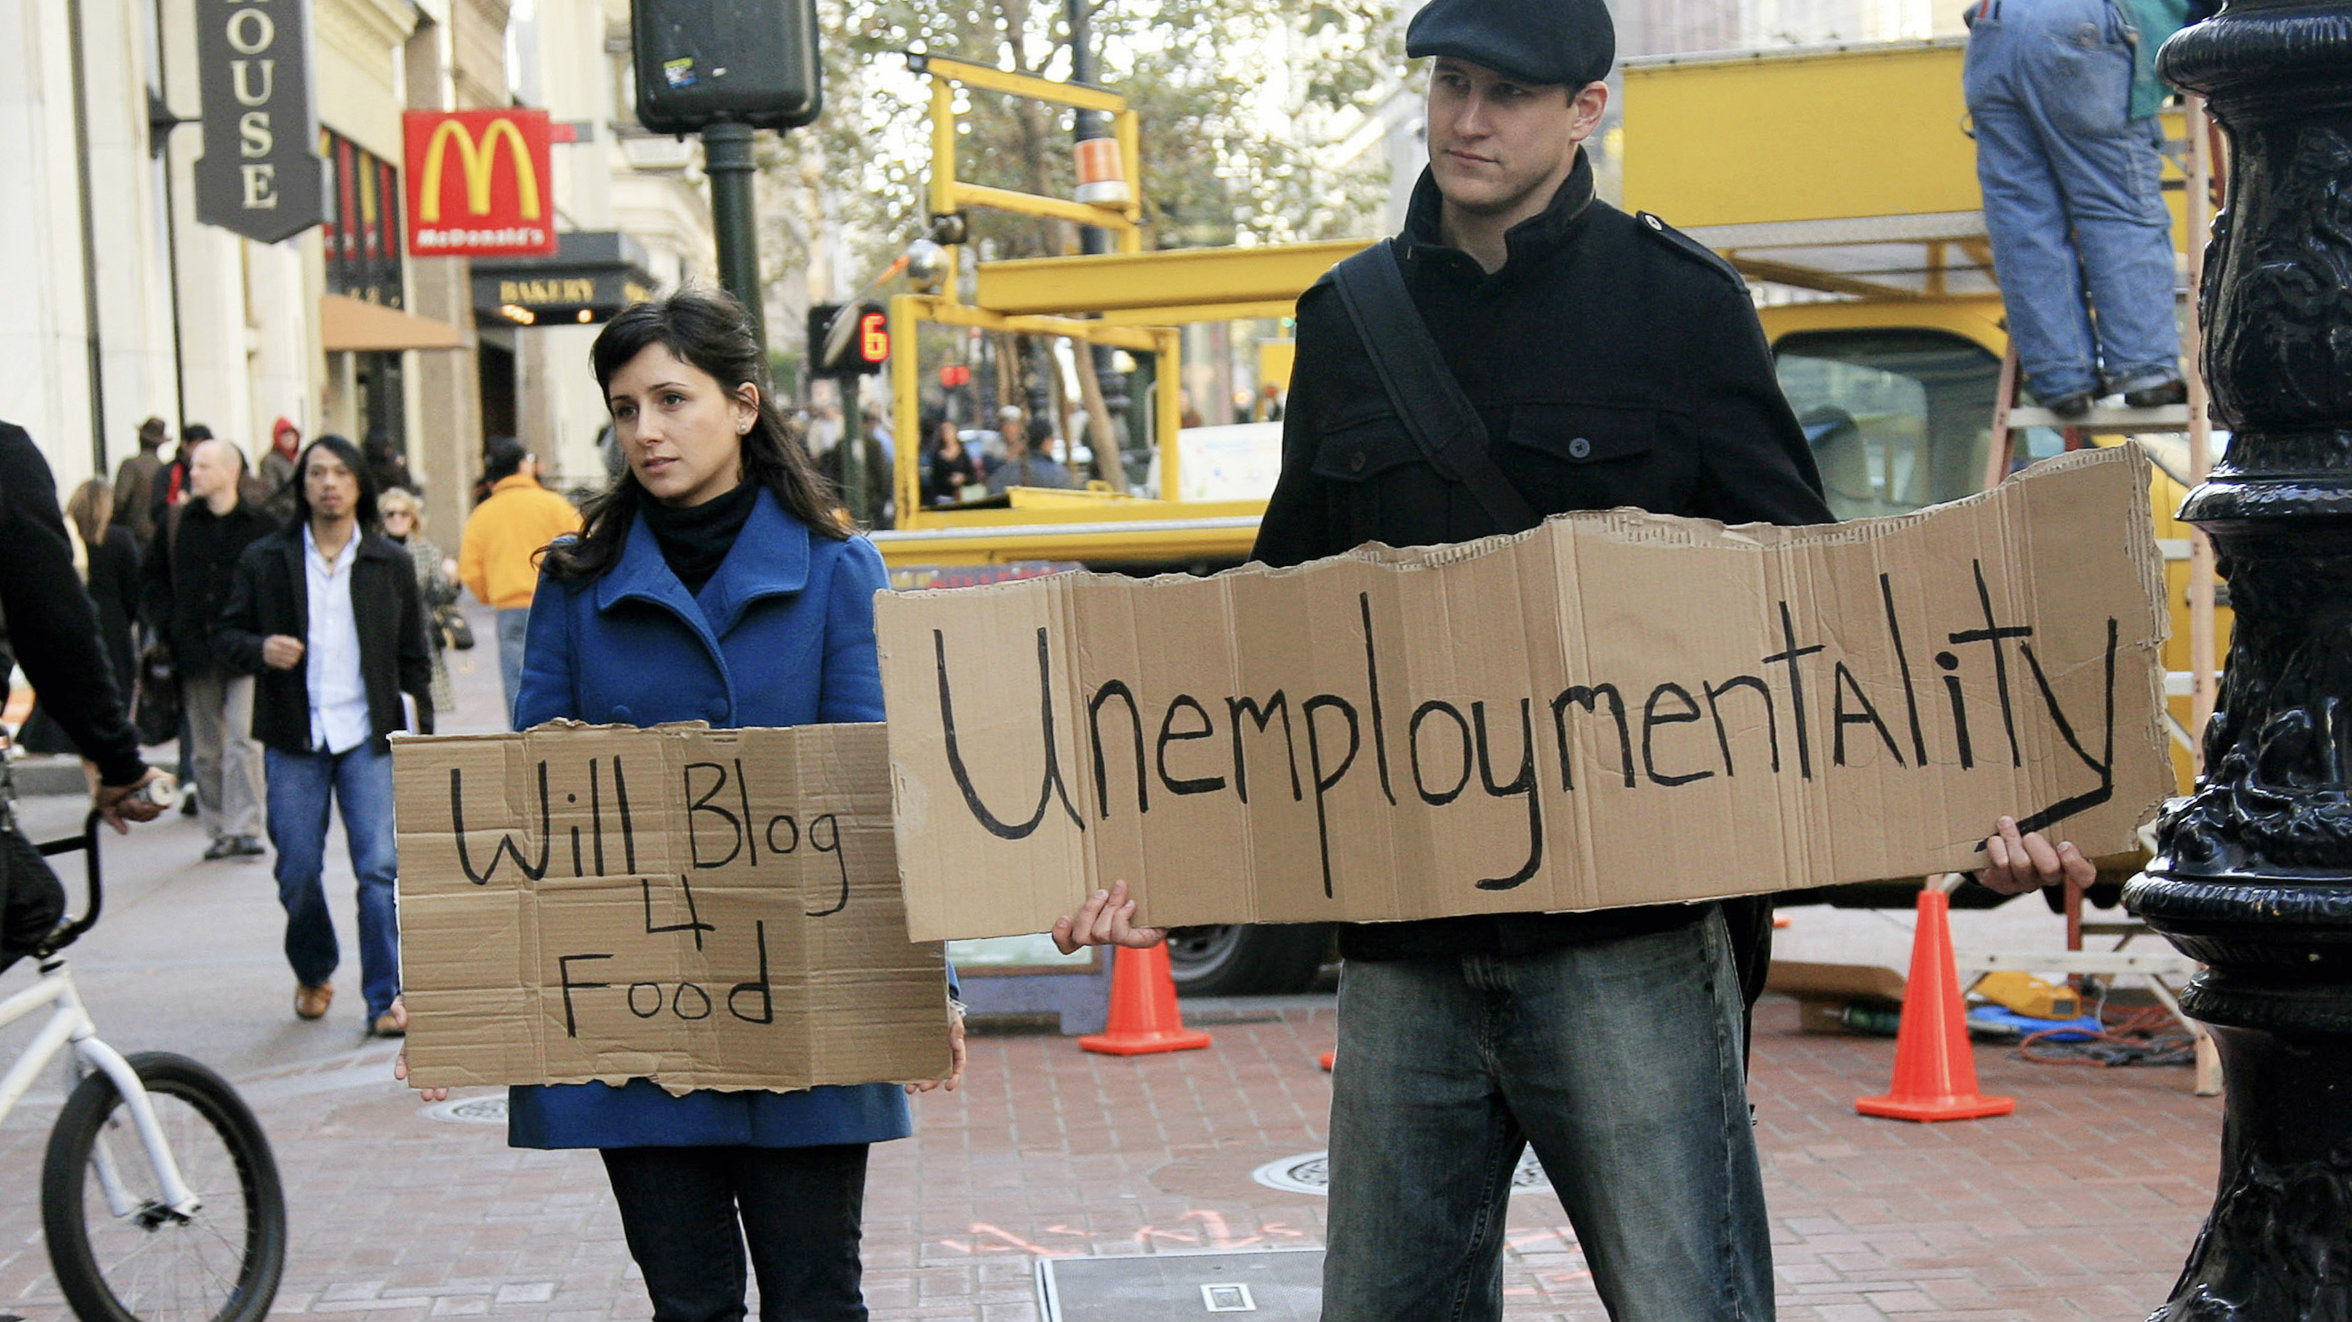 """Tania Khadder (L), 29, and John Henion, 32, both unemployed online journalists, hold signs announcing a new blog called """"unemploymentality.com"""" along Market Street in San Francisco, California December 9, 2008. Both have been laid off from their media jobs and are starting the blog to document the current economic situation from their point of view, and others in similar situations. REUTERS/Robert Galbraith (UNITED STATES)"""